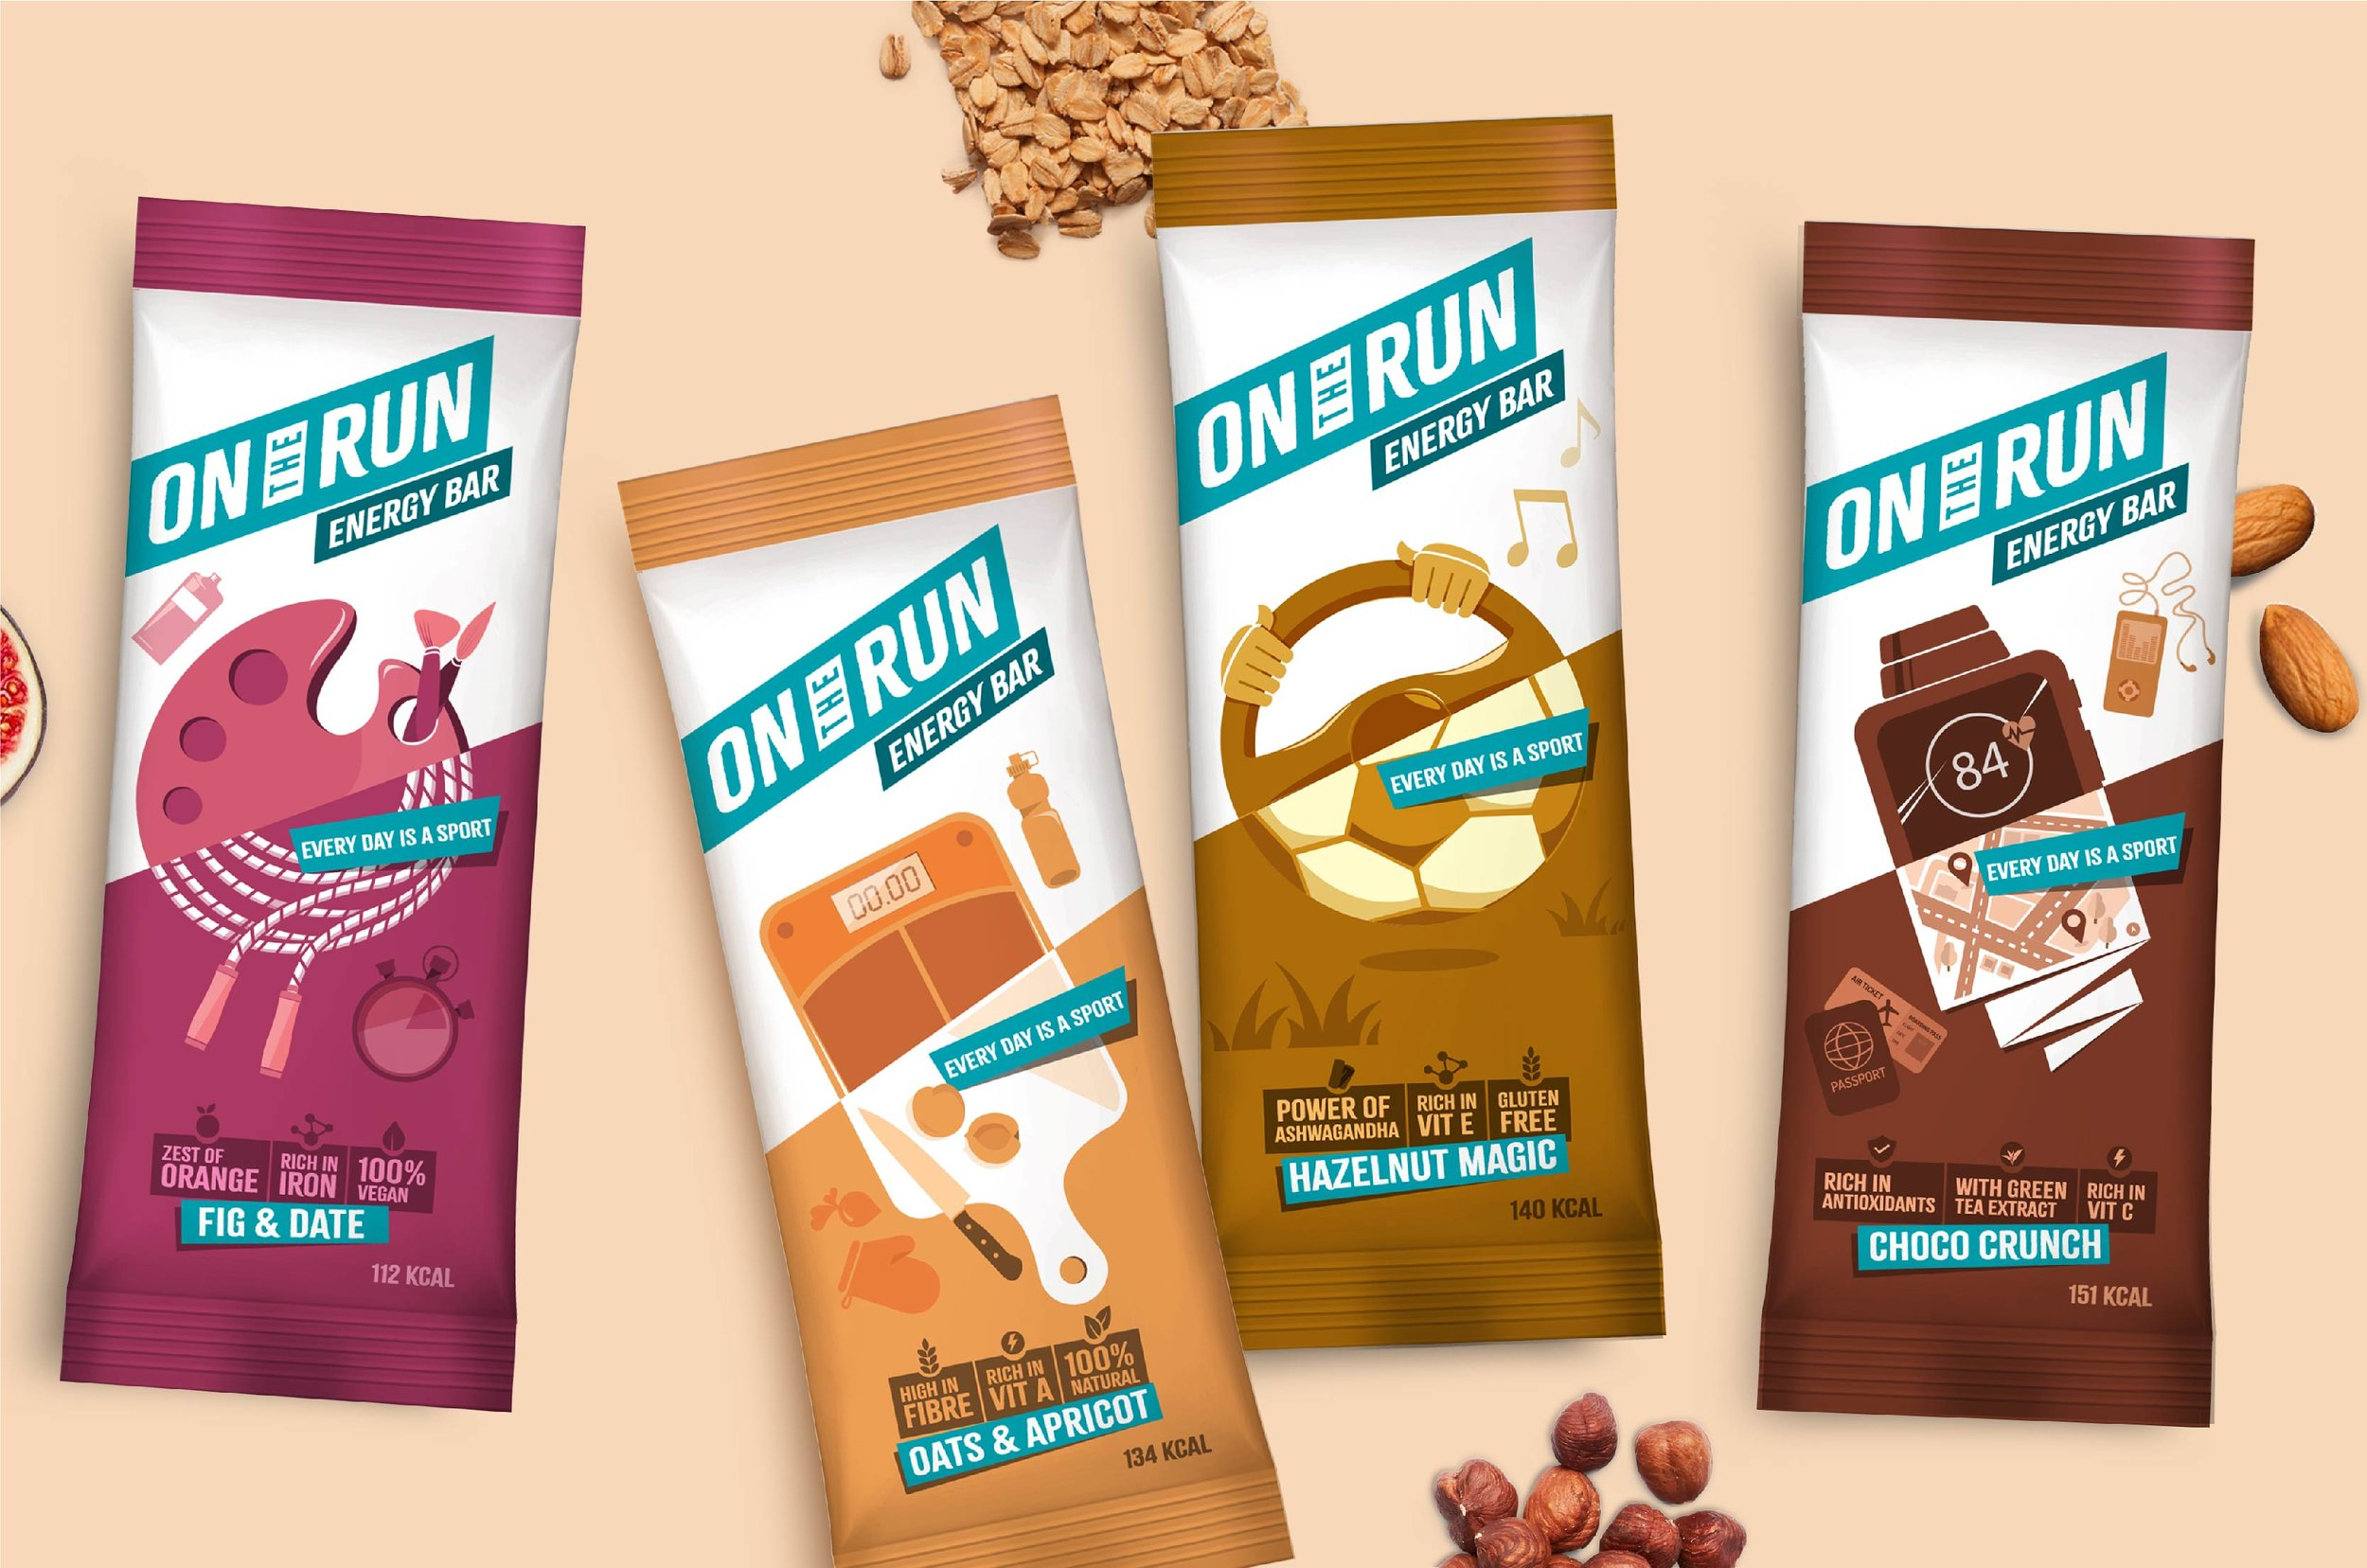 PACKAGING FOR FAST-PACED LIFESTYLE